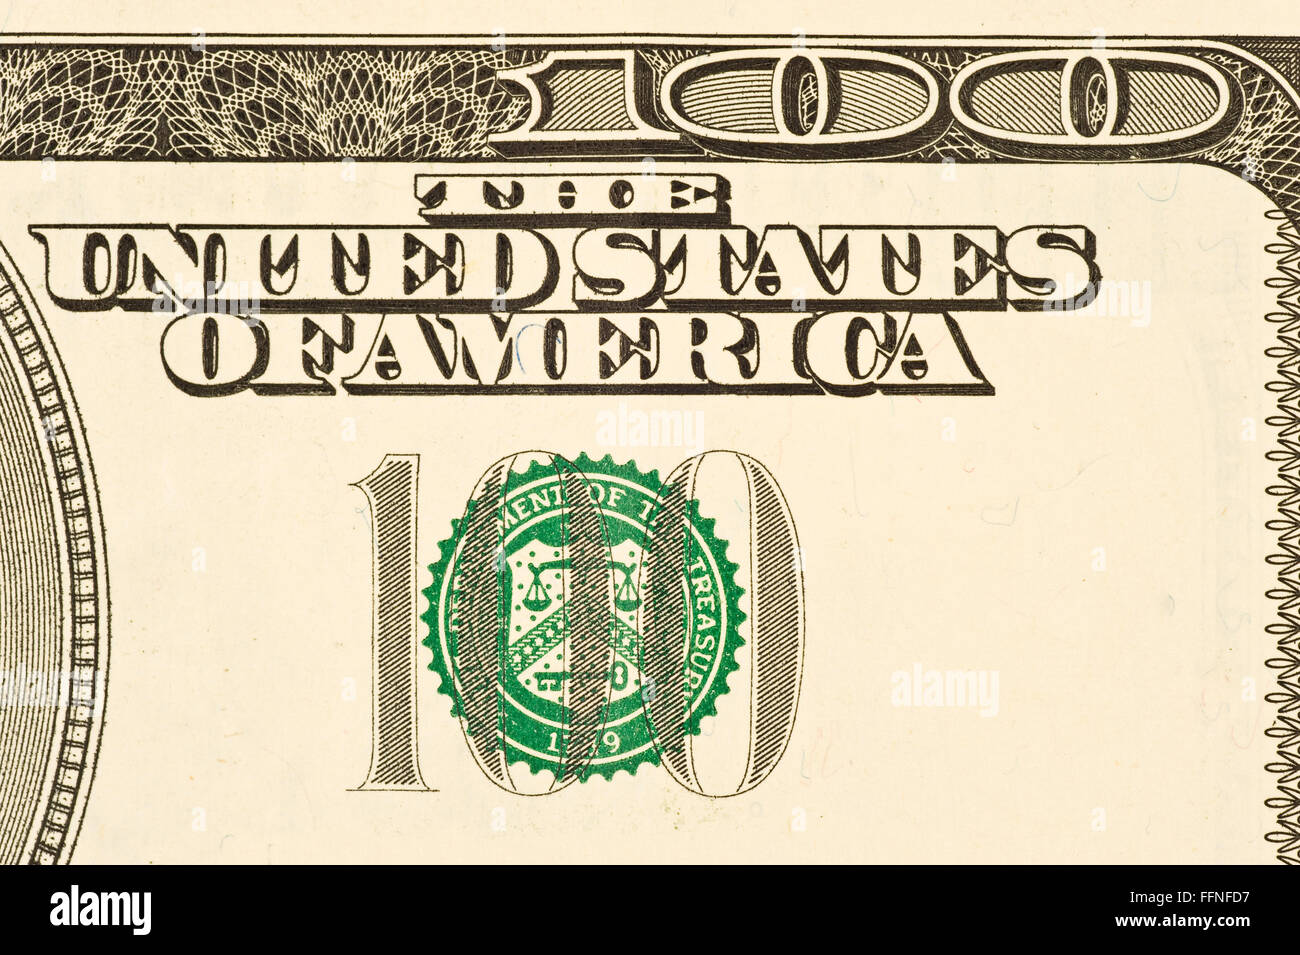 Hundred Dollar Bill Detail - Stock Image